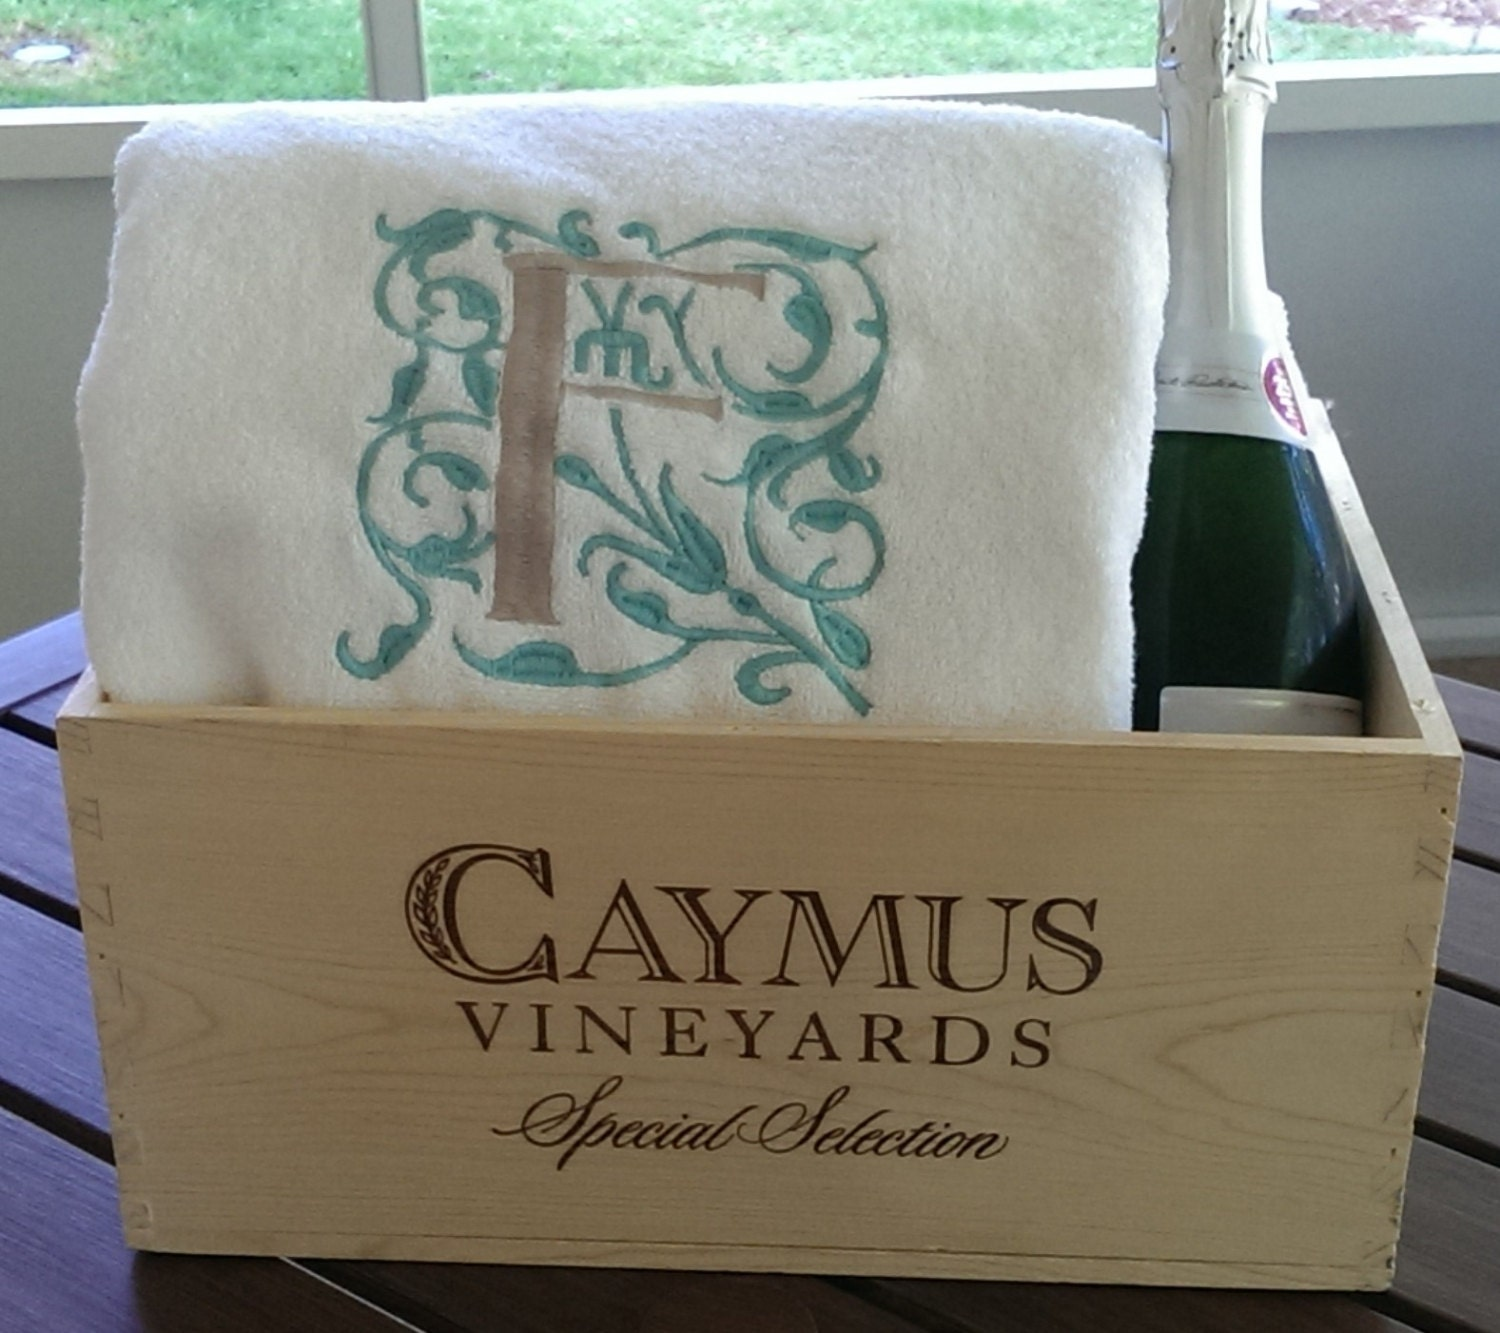 Monogram Towels For Bathroom: Towels Monogrammed Towel Set Personalized Towels Bath